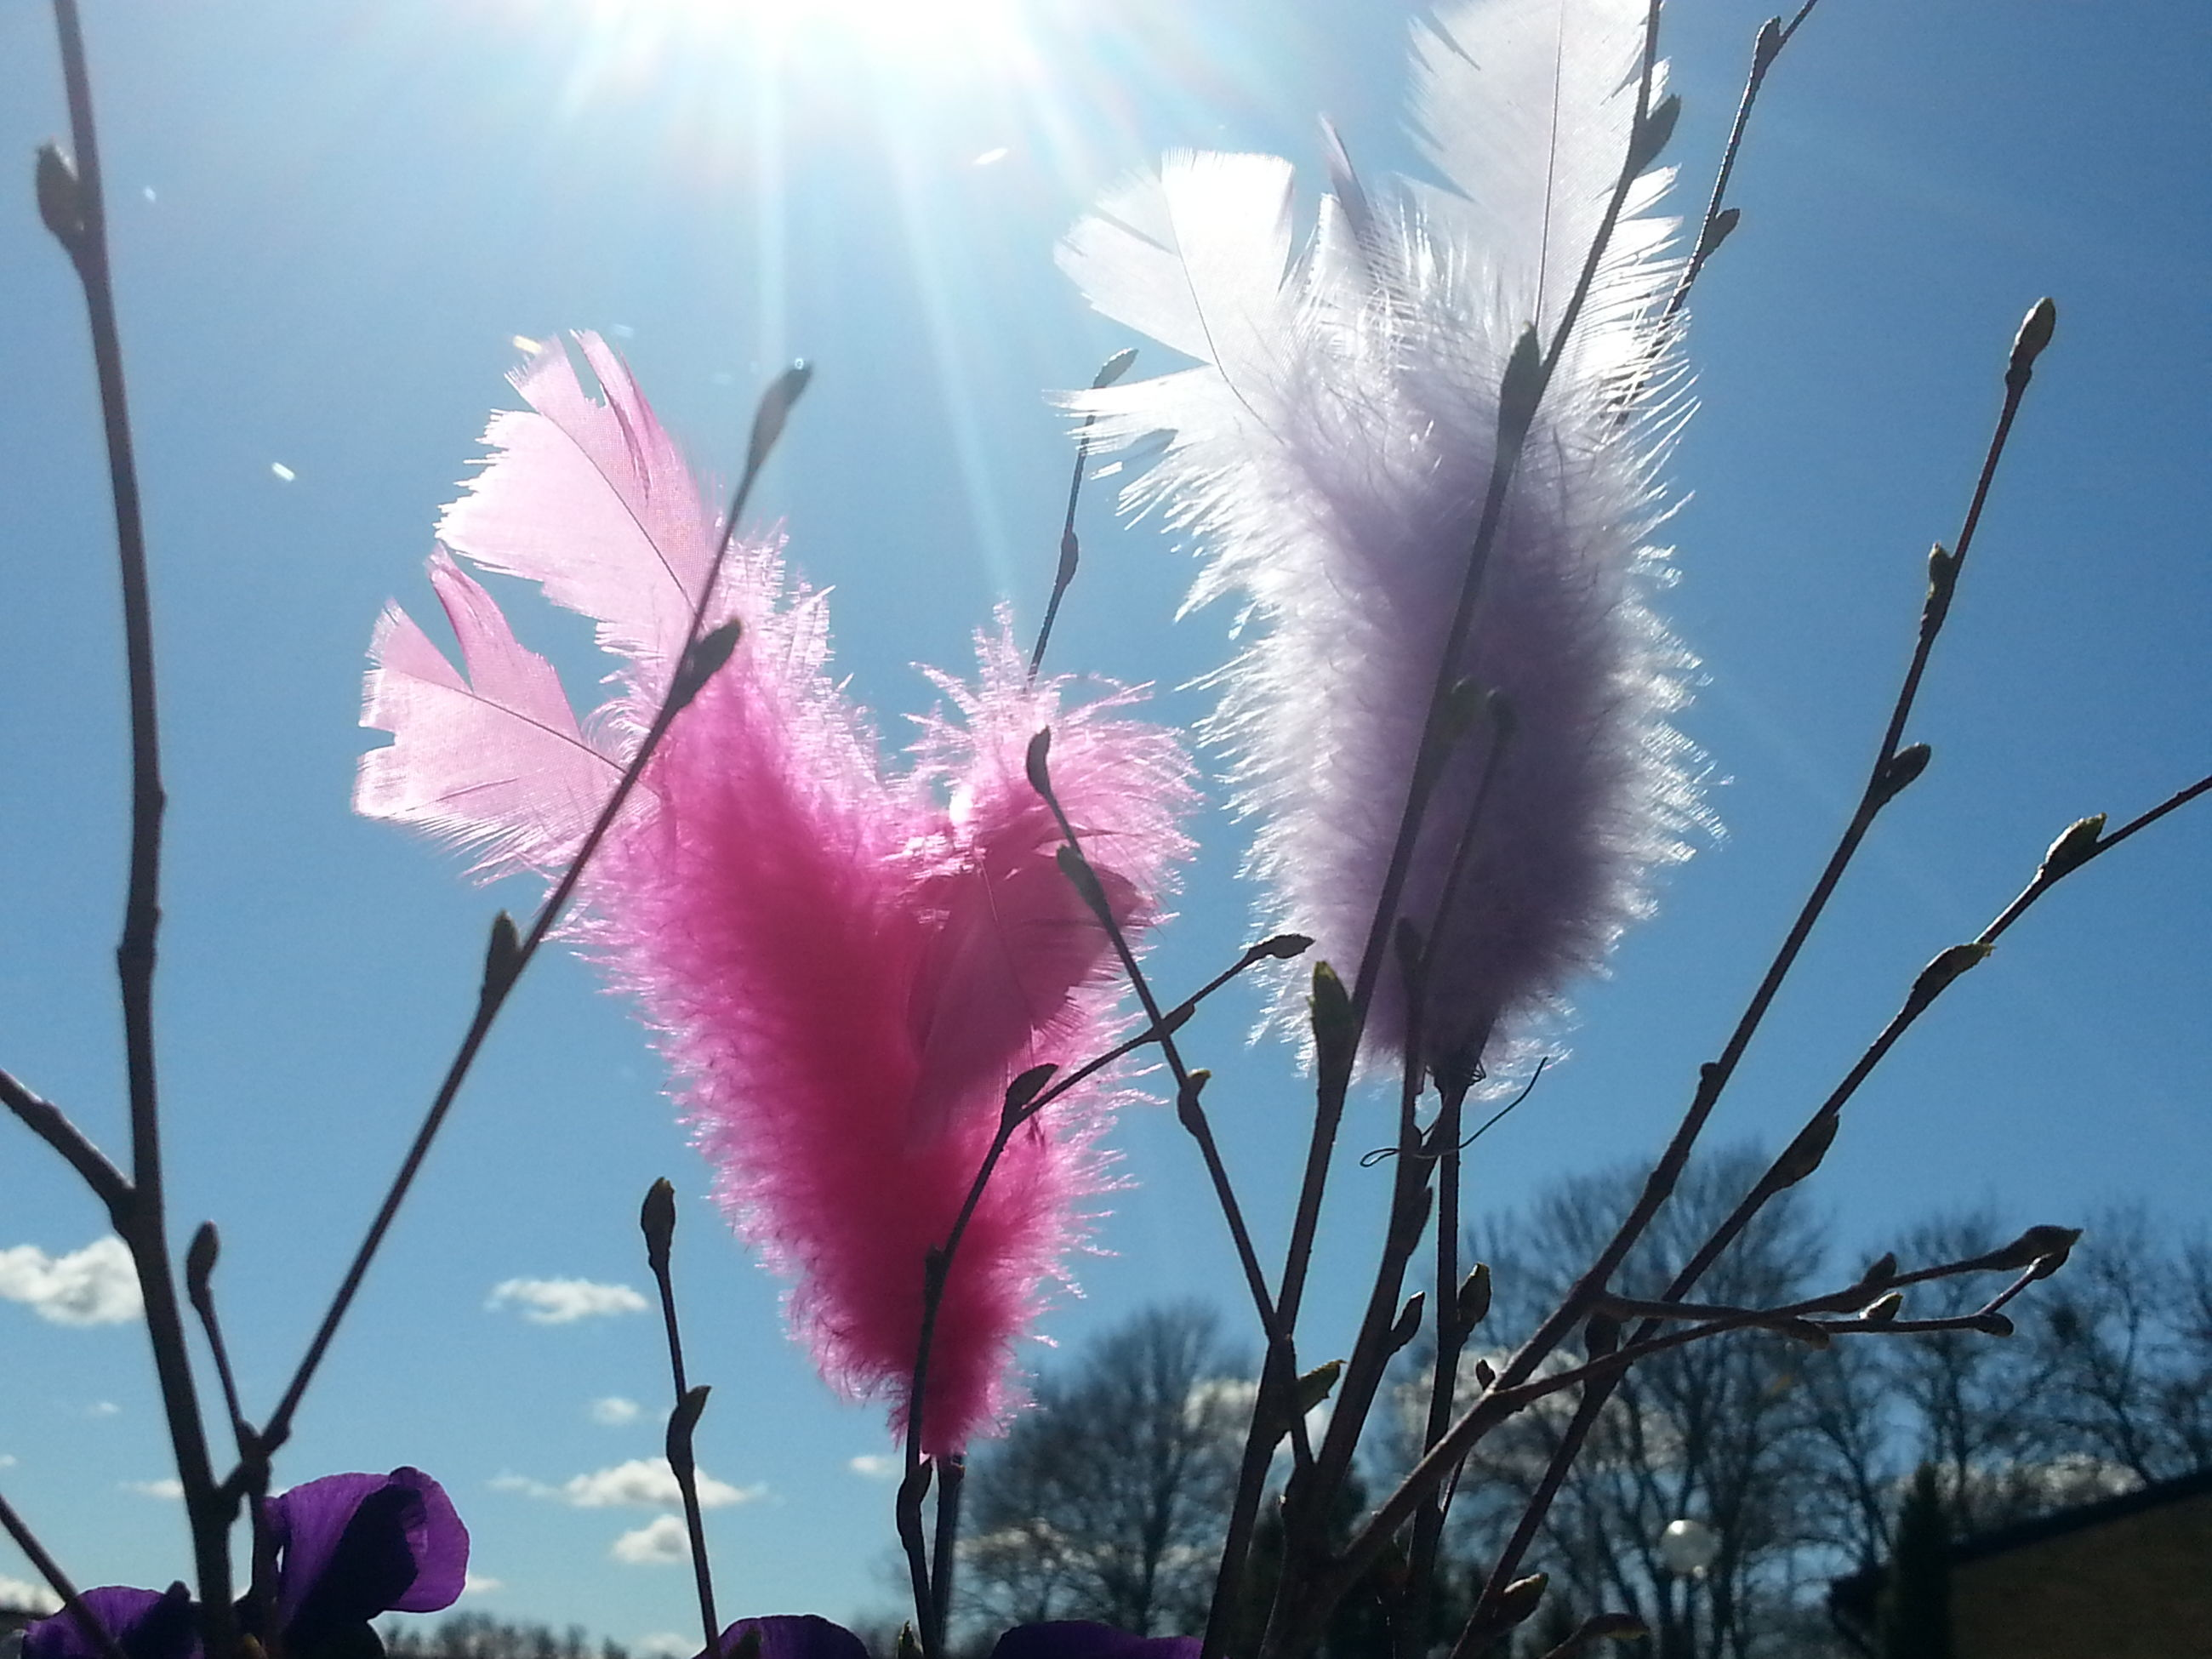 flower, fragility, freshness, growth, beauty in nature, pink color, petal, nature, close-up, plant, flower head, stem, blooming, in bloom, focus on foreground, season, blossom, sunlight, springtime, botany